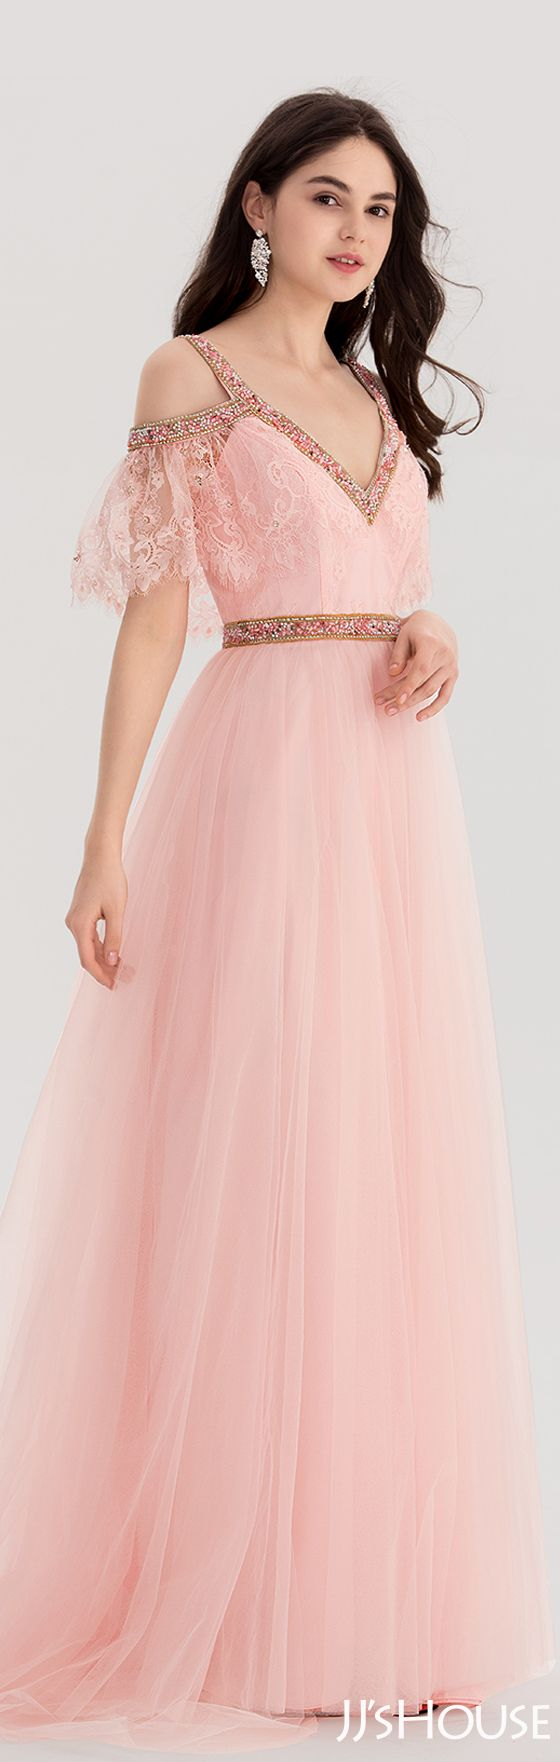 512 best JJ\'s House Prom Dresses images on Pinterest